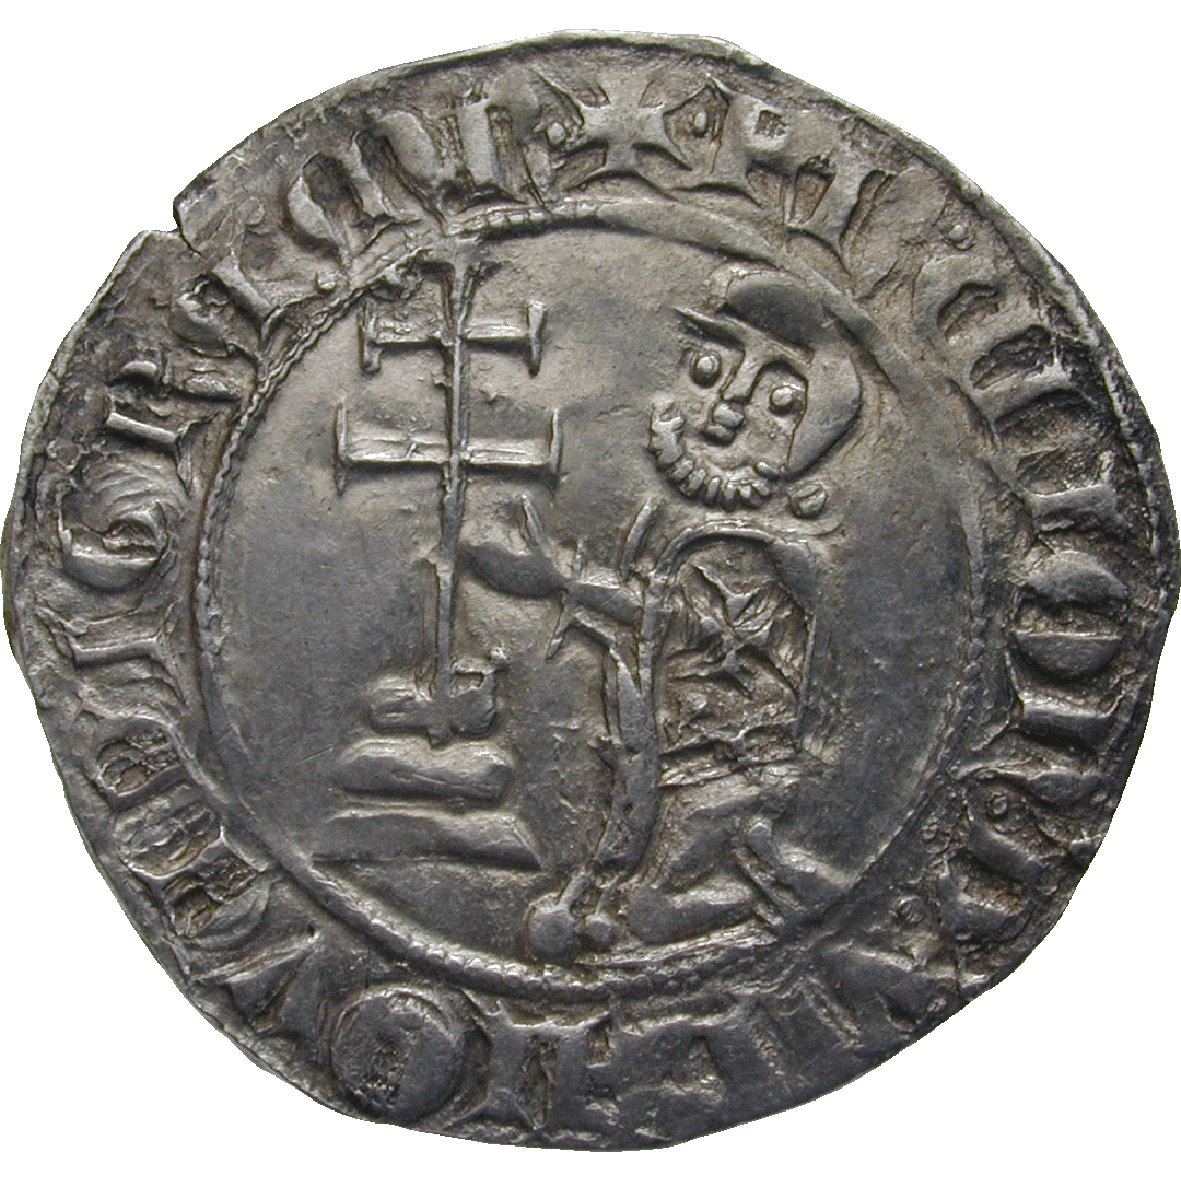 Rhodos under the Order of St John, Helion de Villeneuve, Gigliato (obverse)